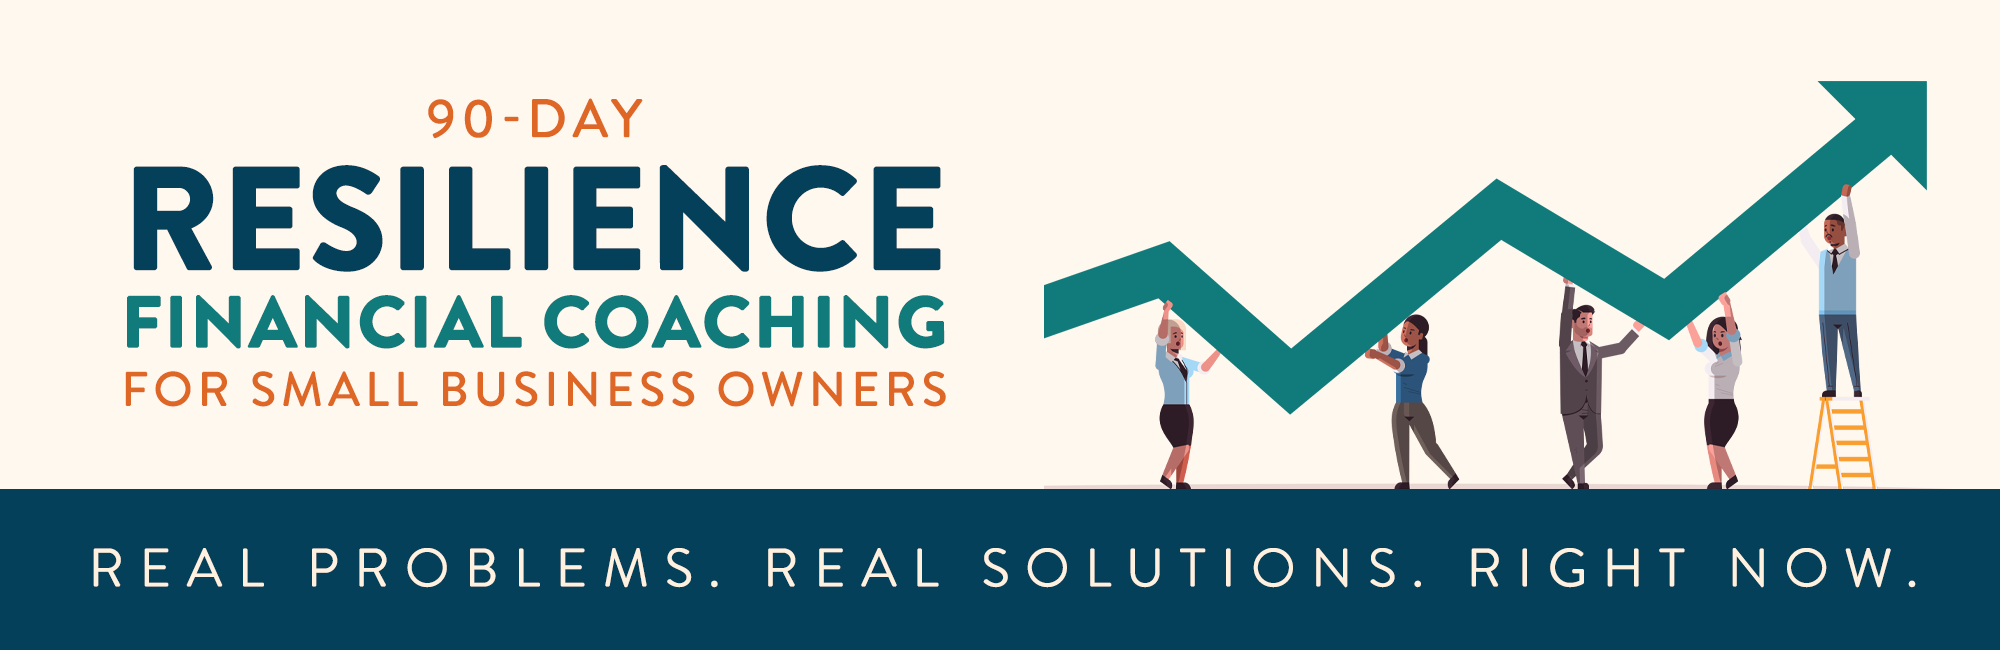 90 Day Resilence Financial Coaching For Small Business